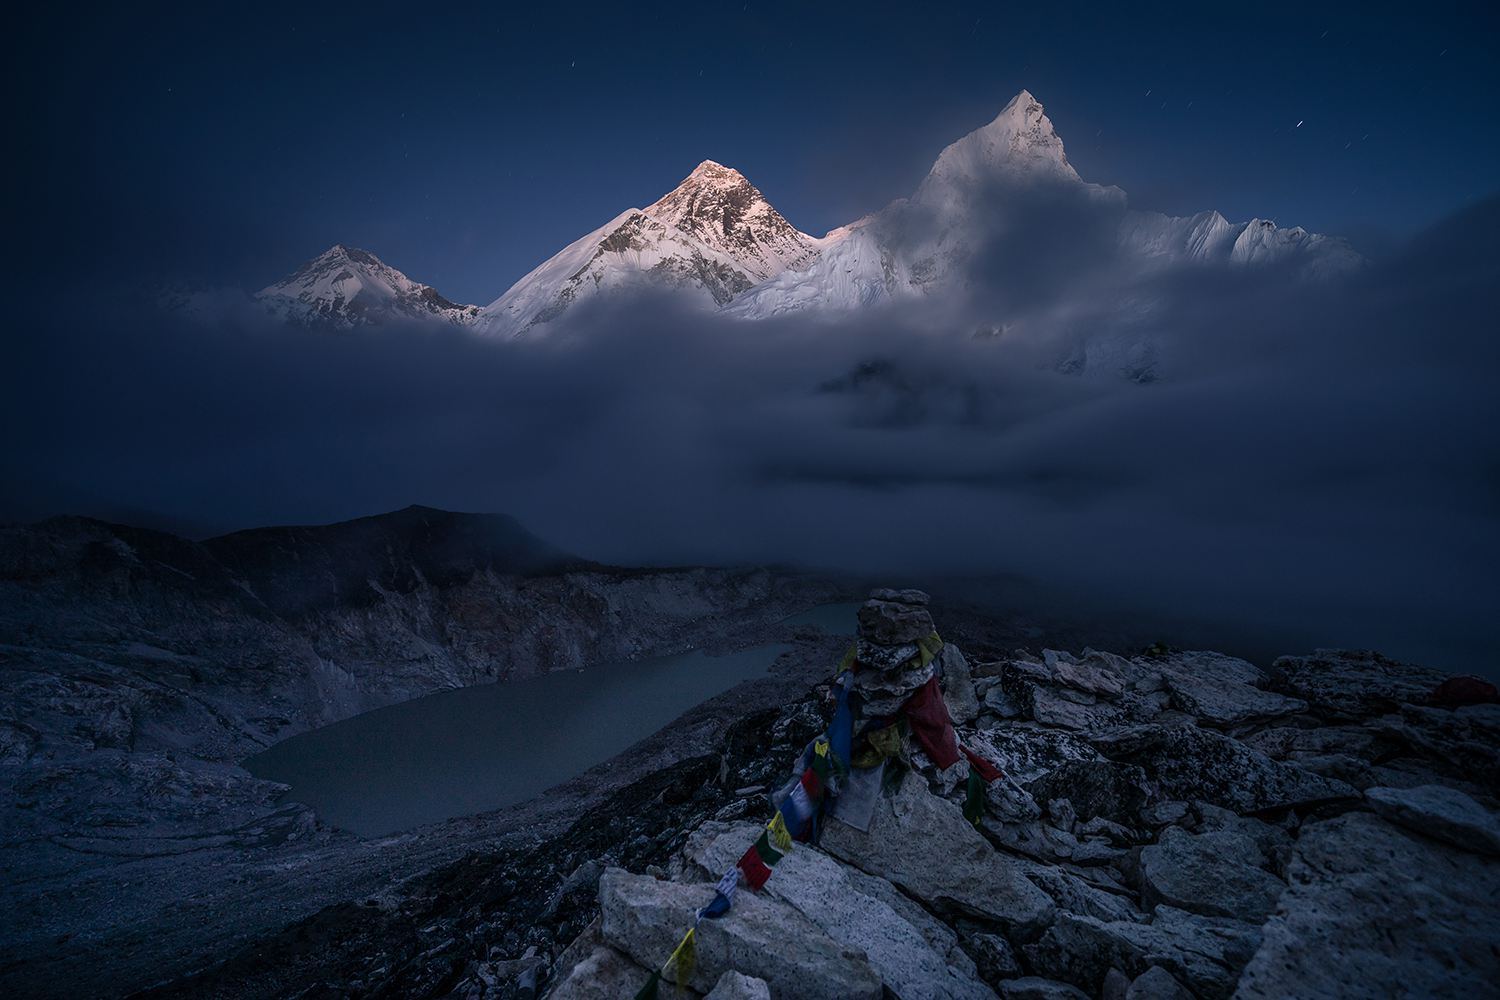 Everest mountain view on top of Kalapattar view point at night, Everest region, Nepal